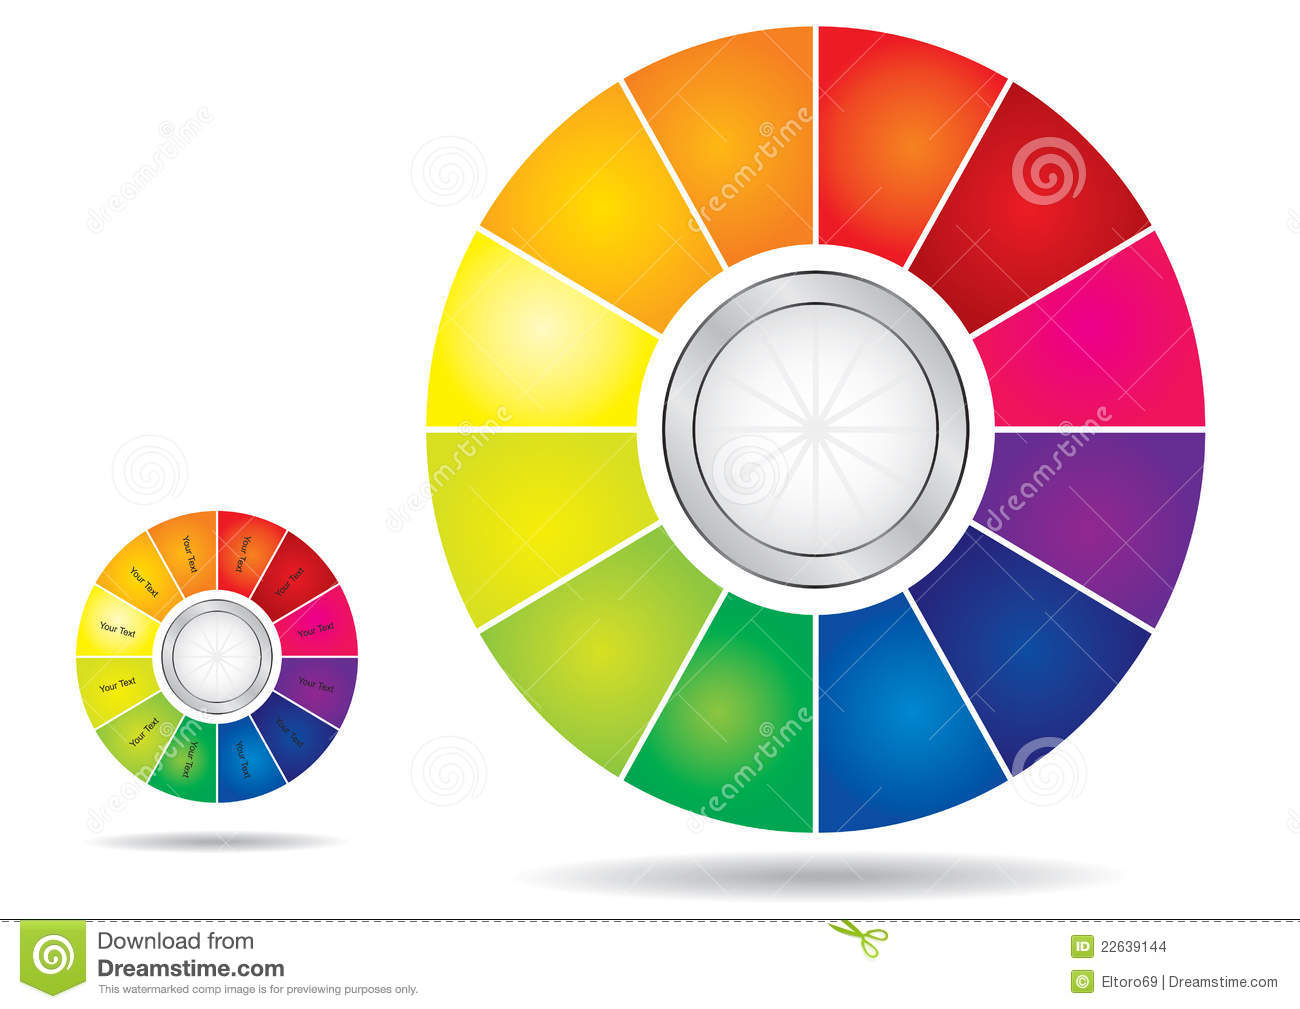 editable color wheel template - Color Template